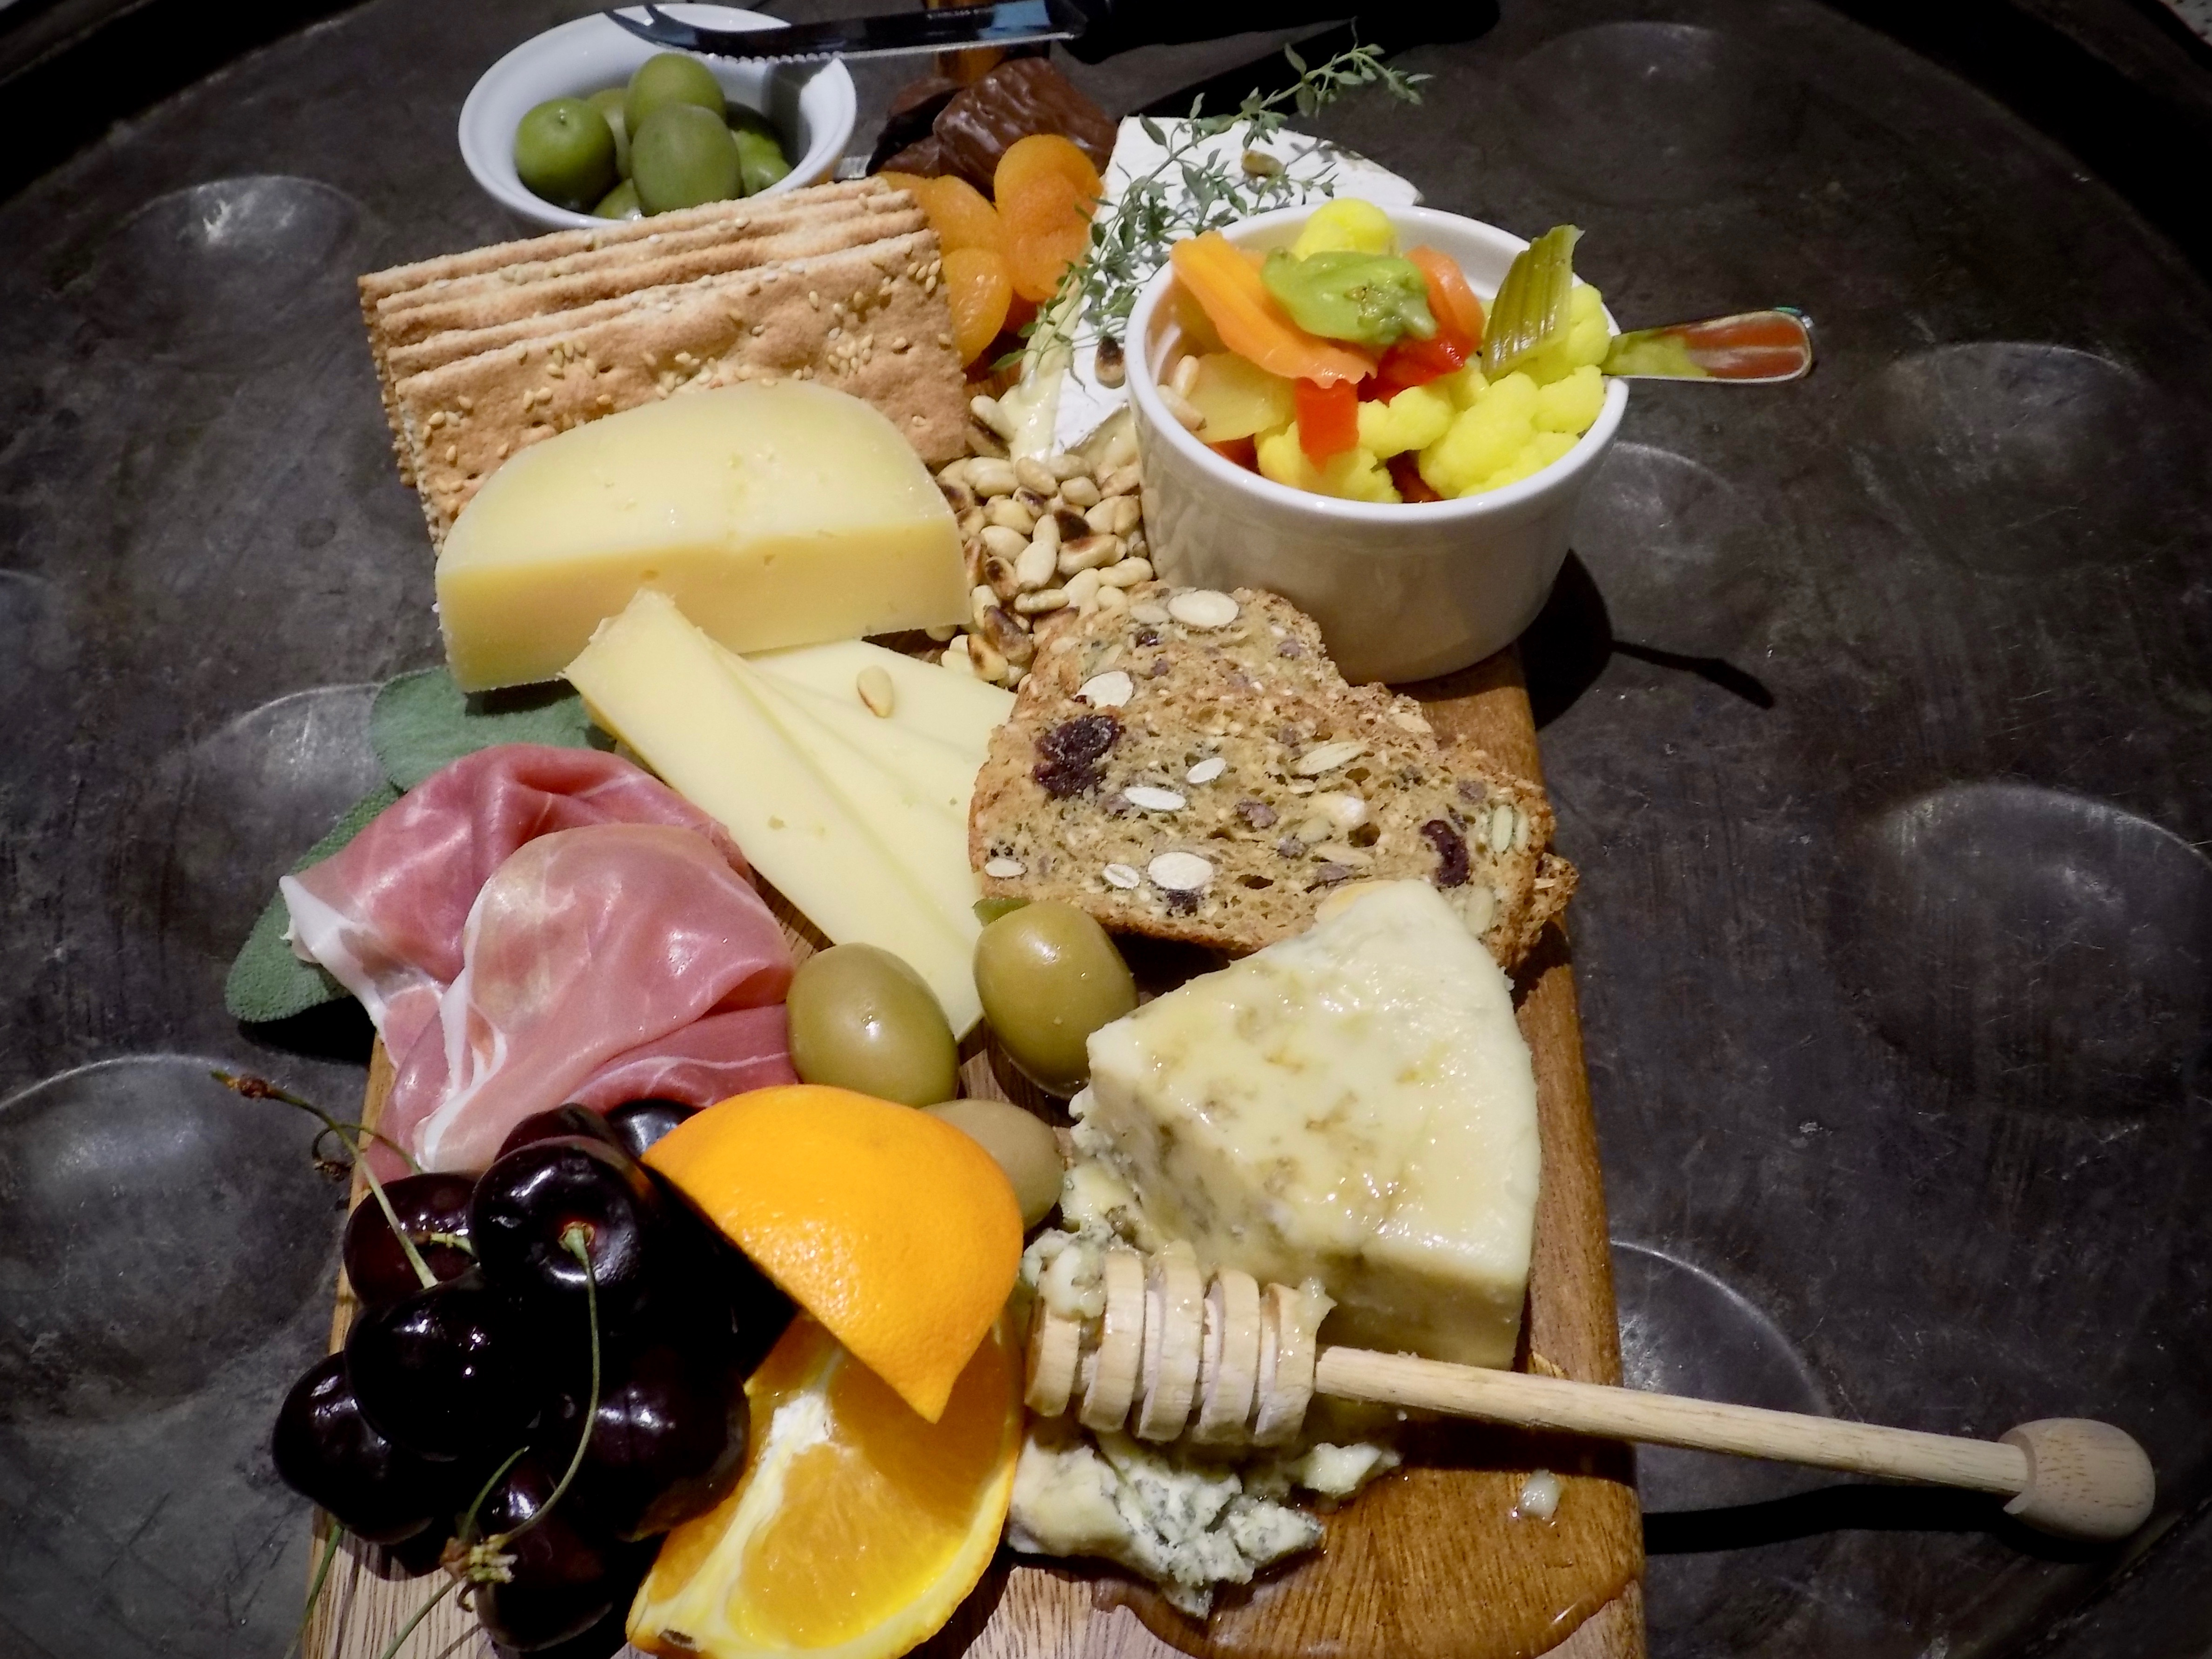 #fromage friday (SAY CHEESE, PLEASE)